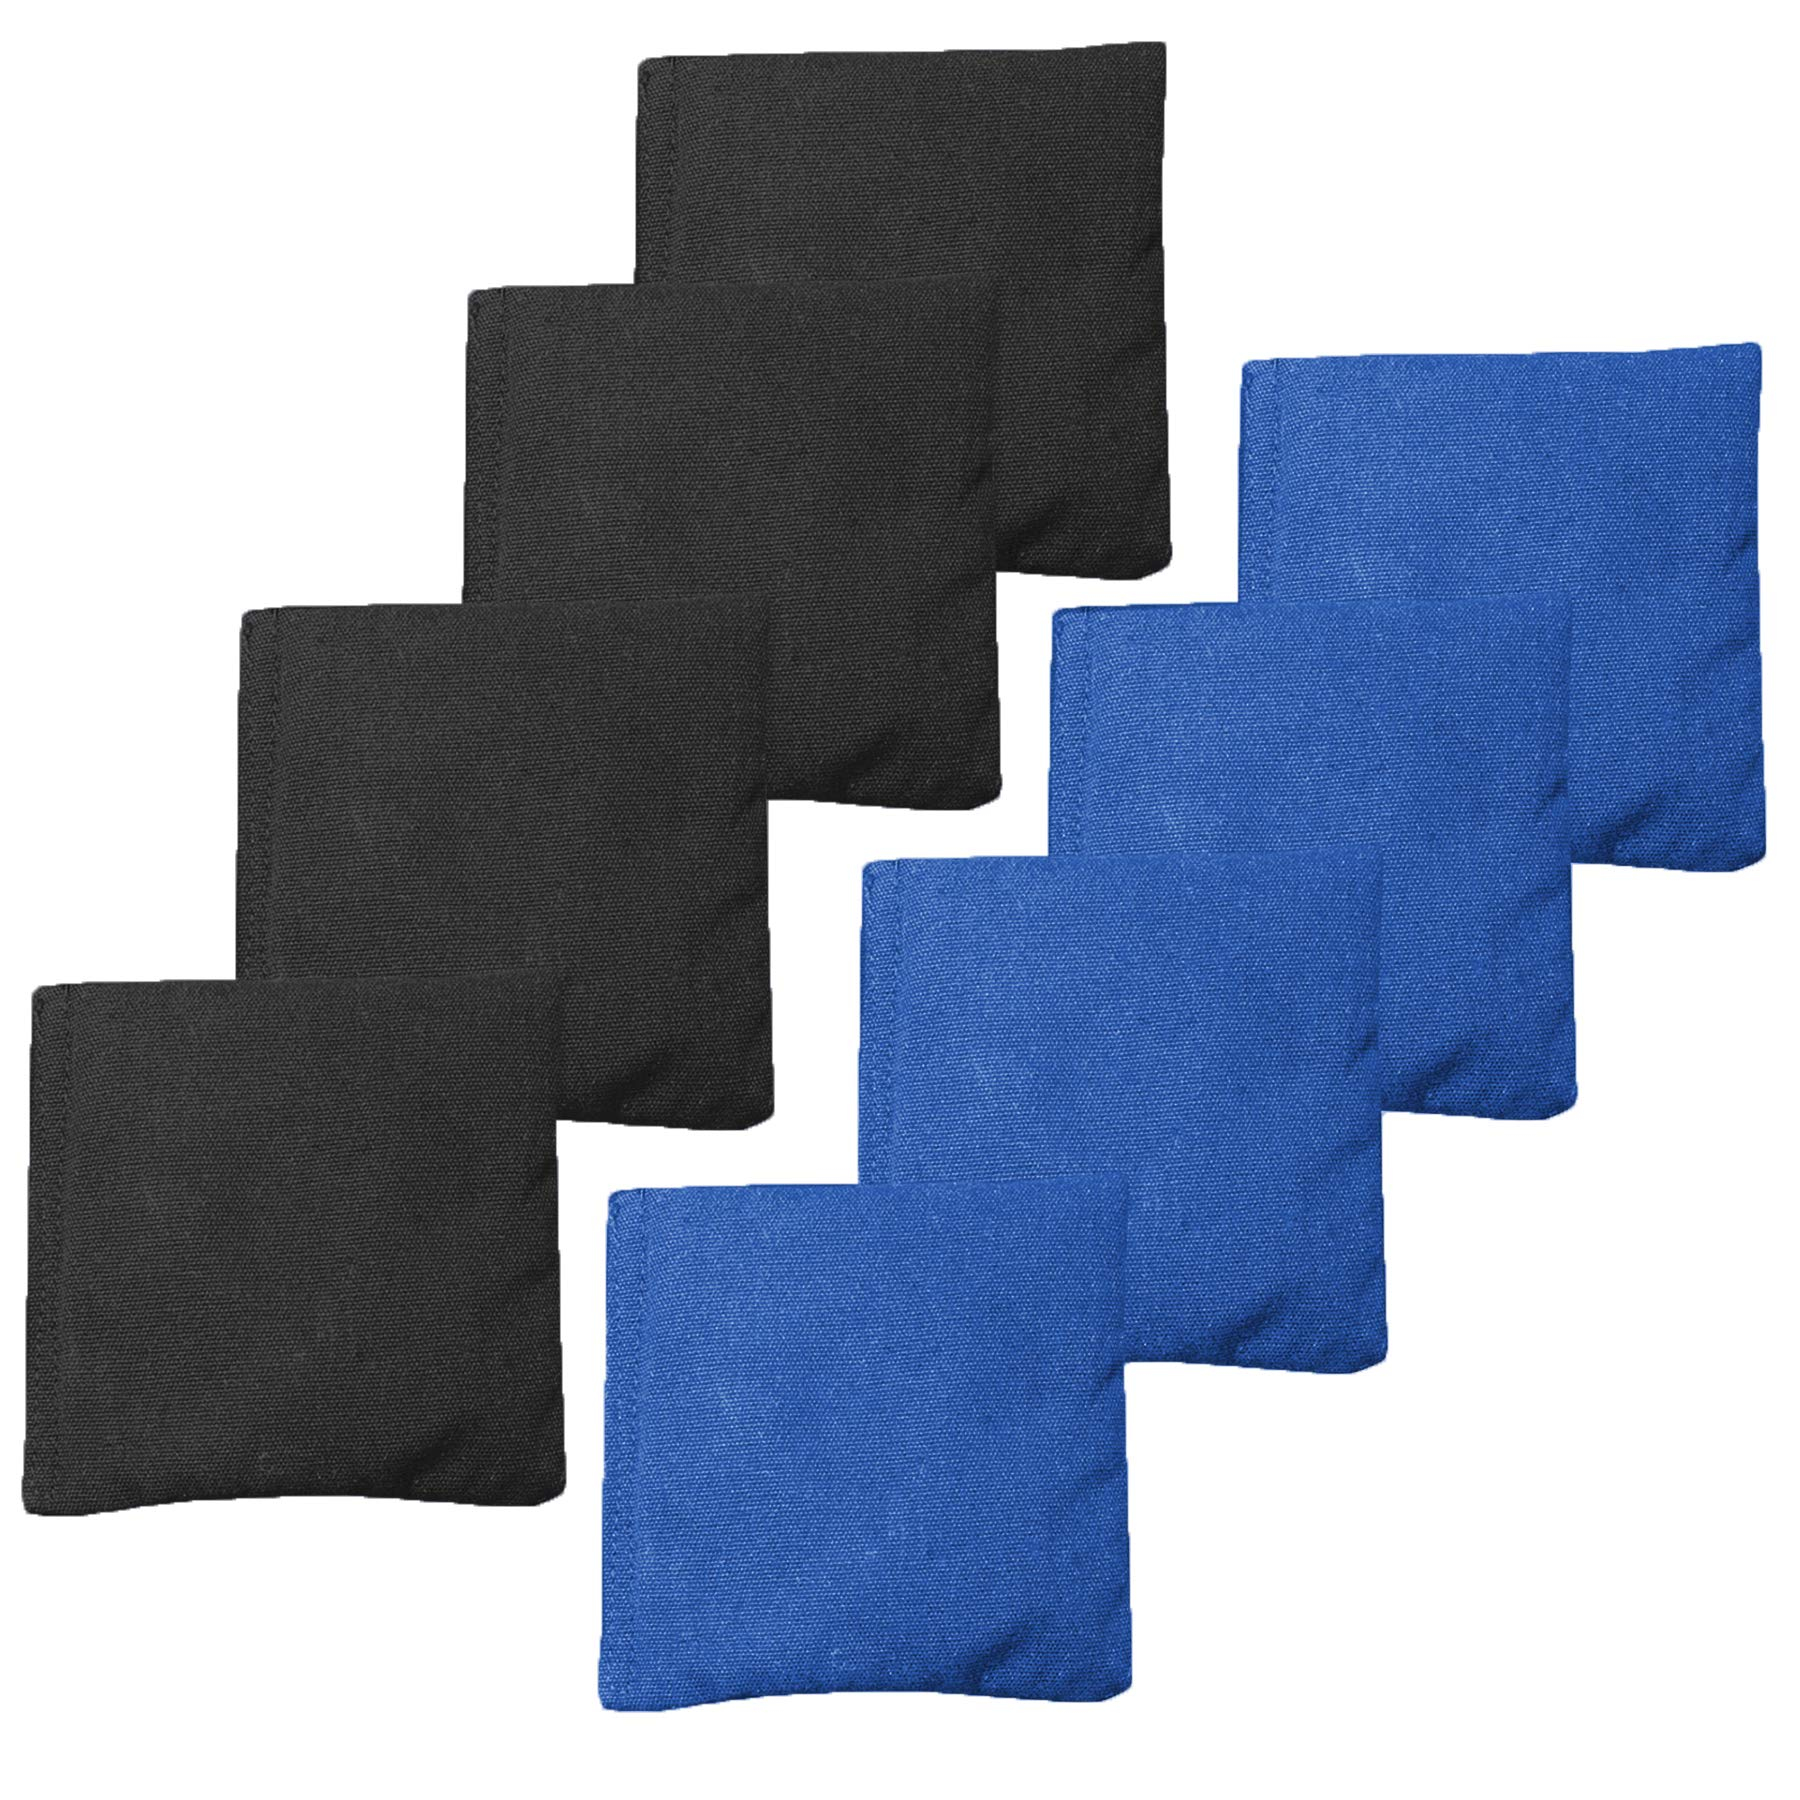 All Weather Cornhole Bean Bags Set of 8 - Duck Cloth, Regulation Size & Weight - Royal Blue & Black